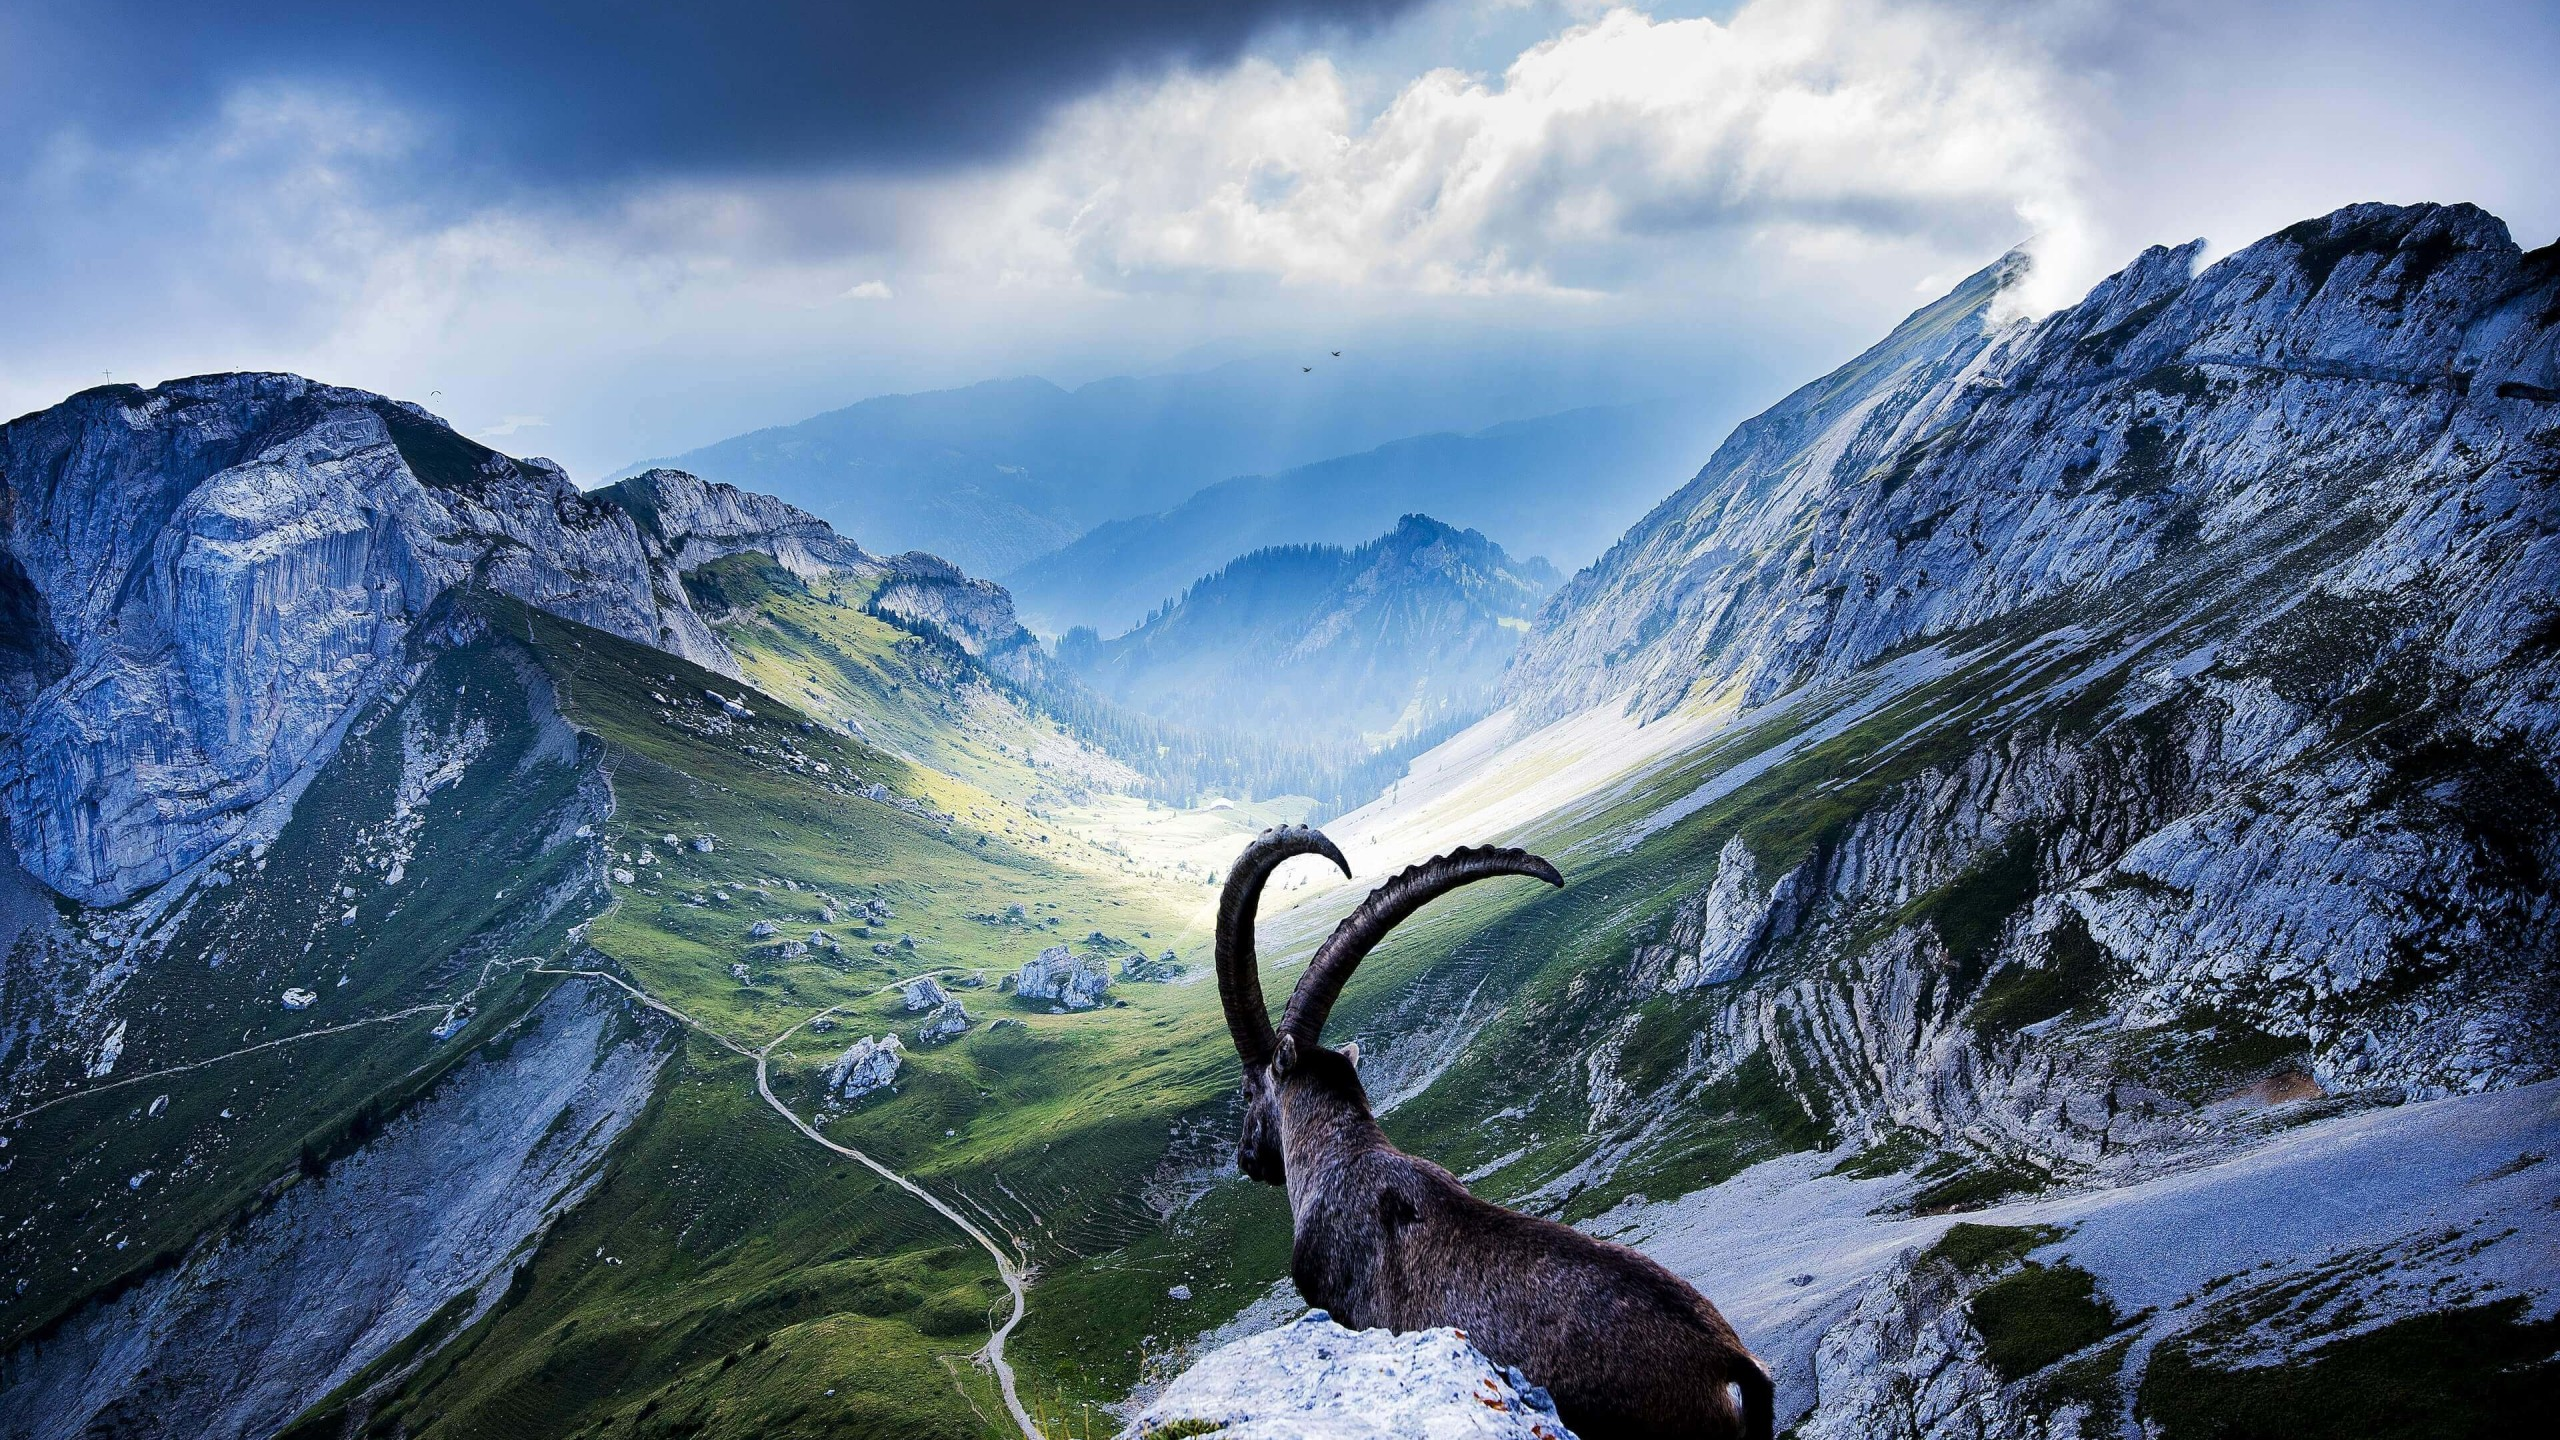 Goat at Pilatus, Switzerland Wallpaper for Desktop 2560x1440